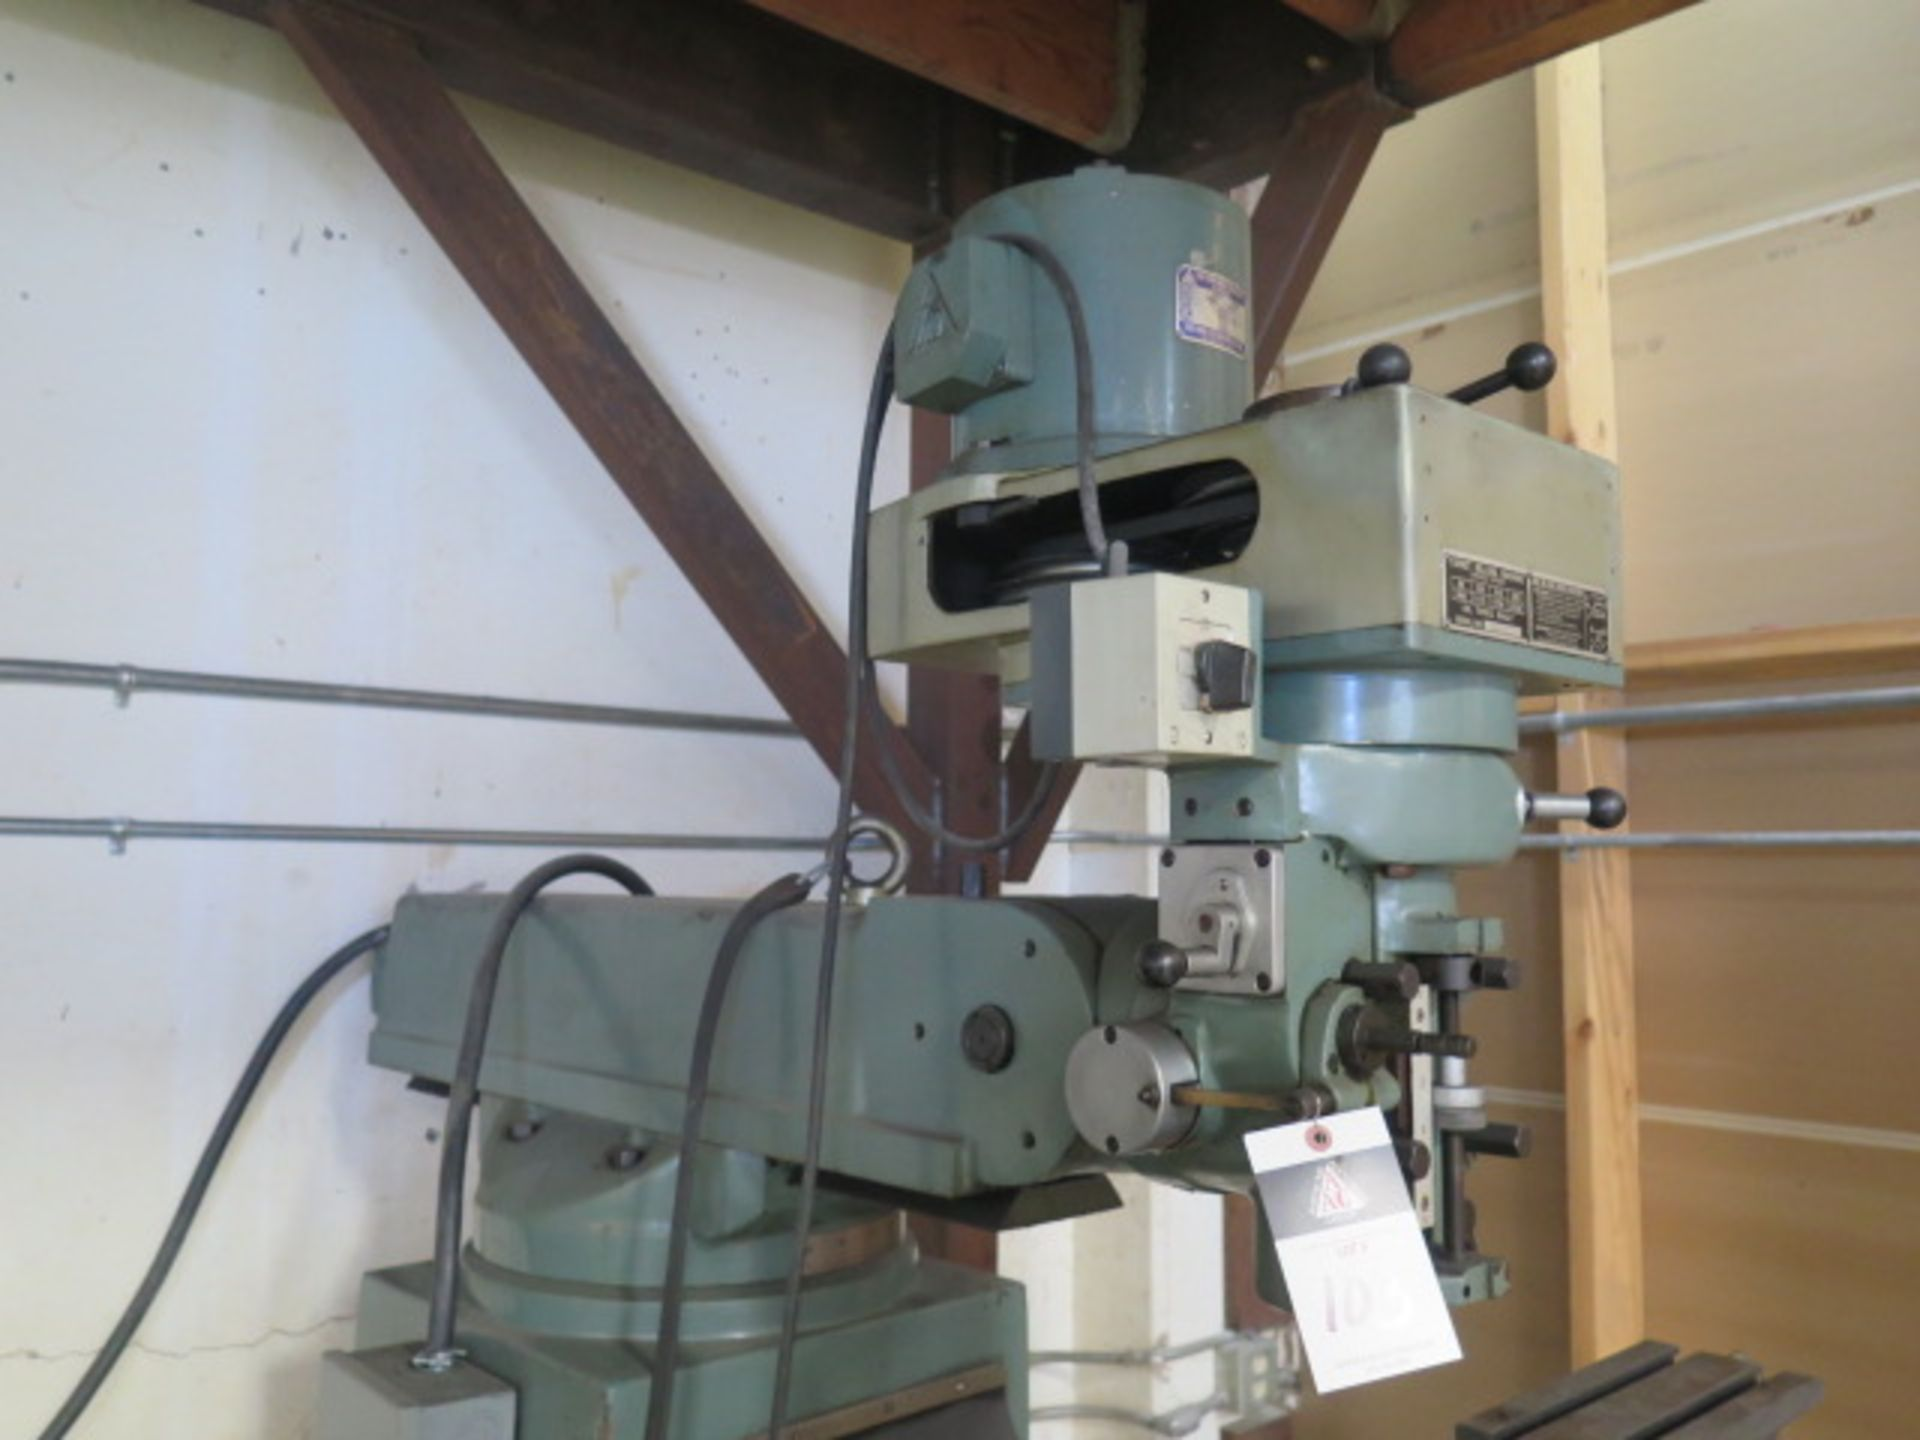 """Import Vertical Mill w/ 3Hp Motor, 80-2720 RPM, 8-Speeds, R8 Spindle, 10"""" x 48"""" Table (SOLD AS- - Image 4 of 9"""